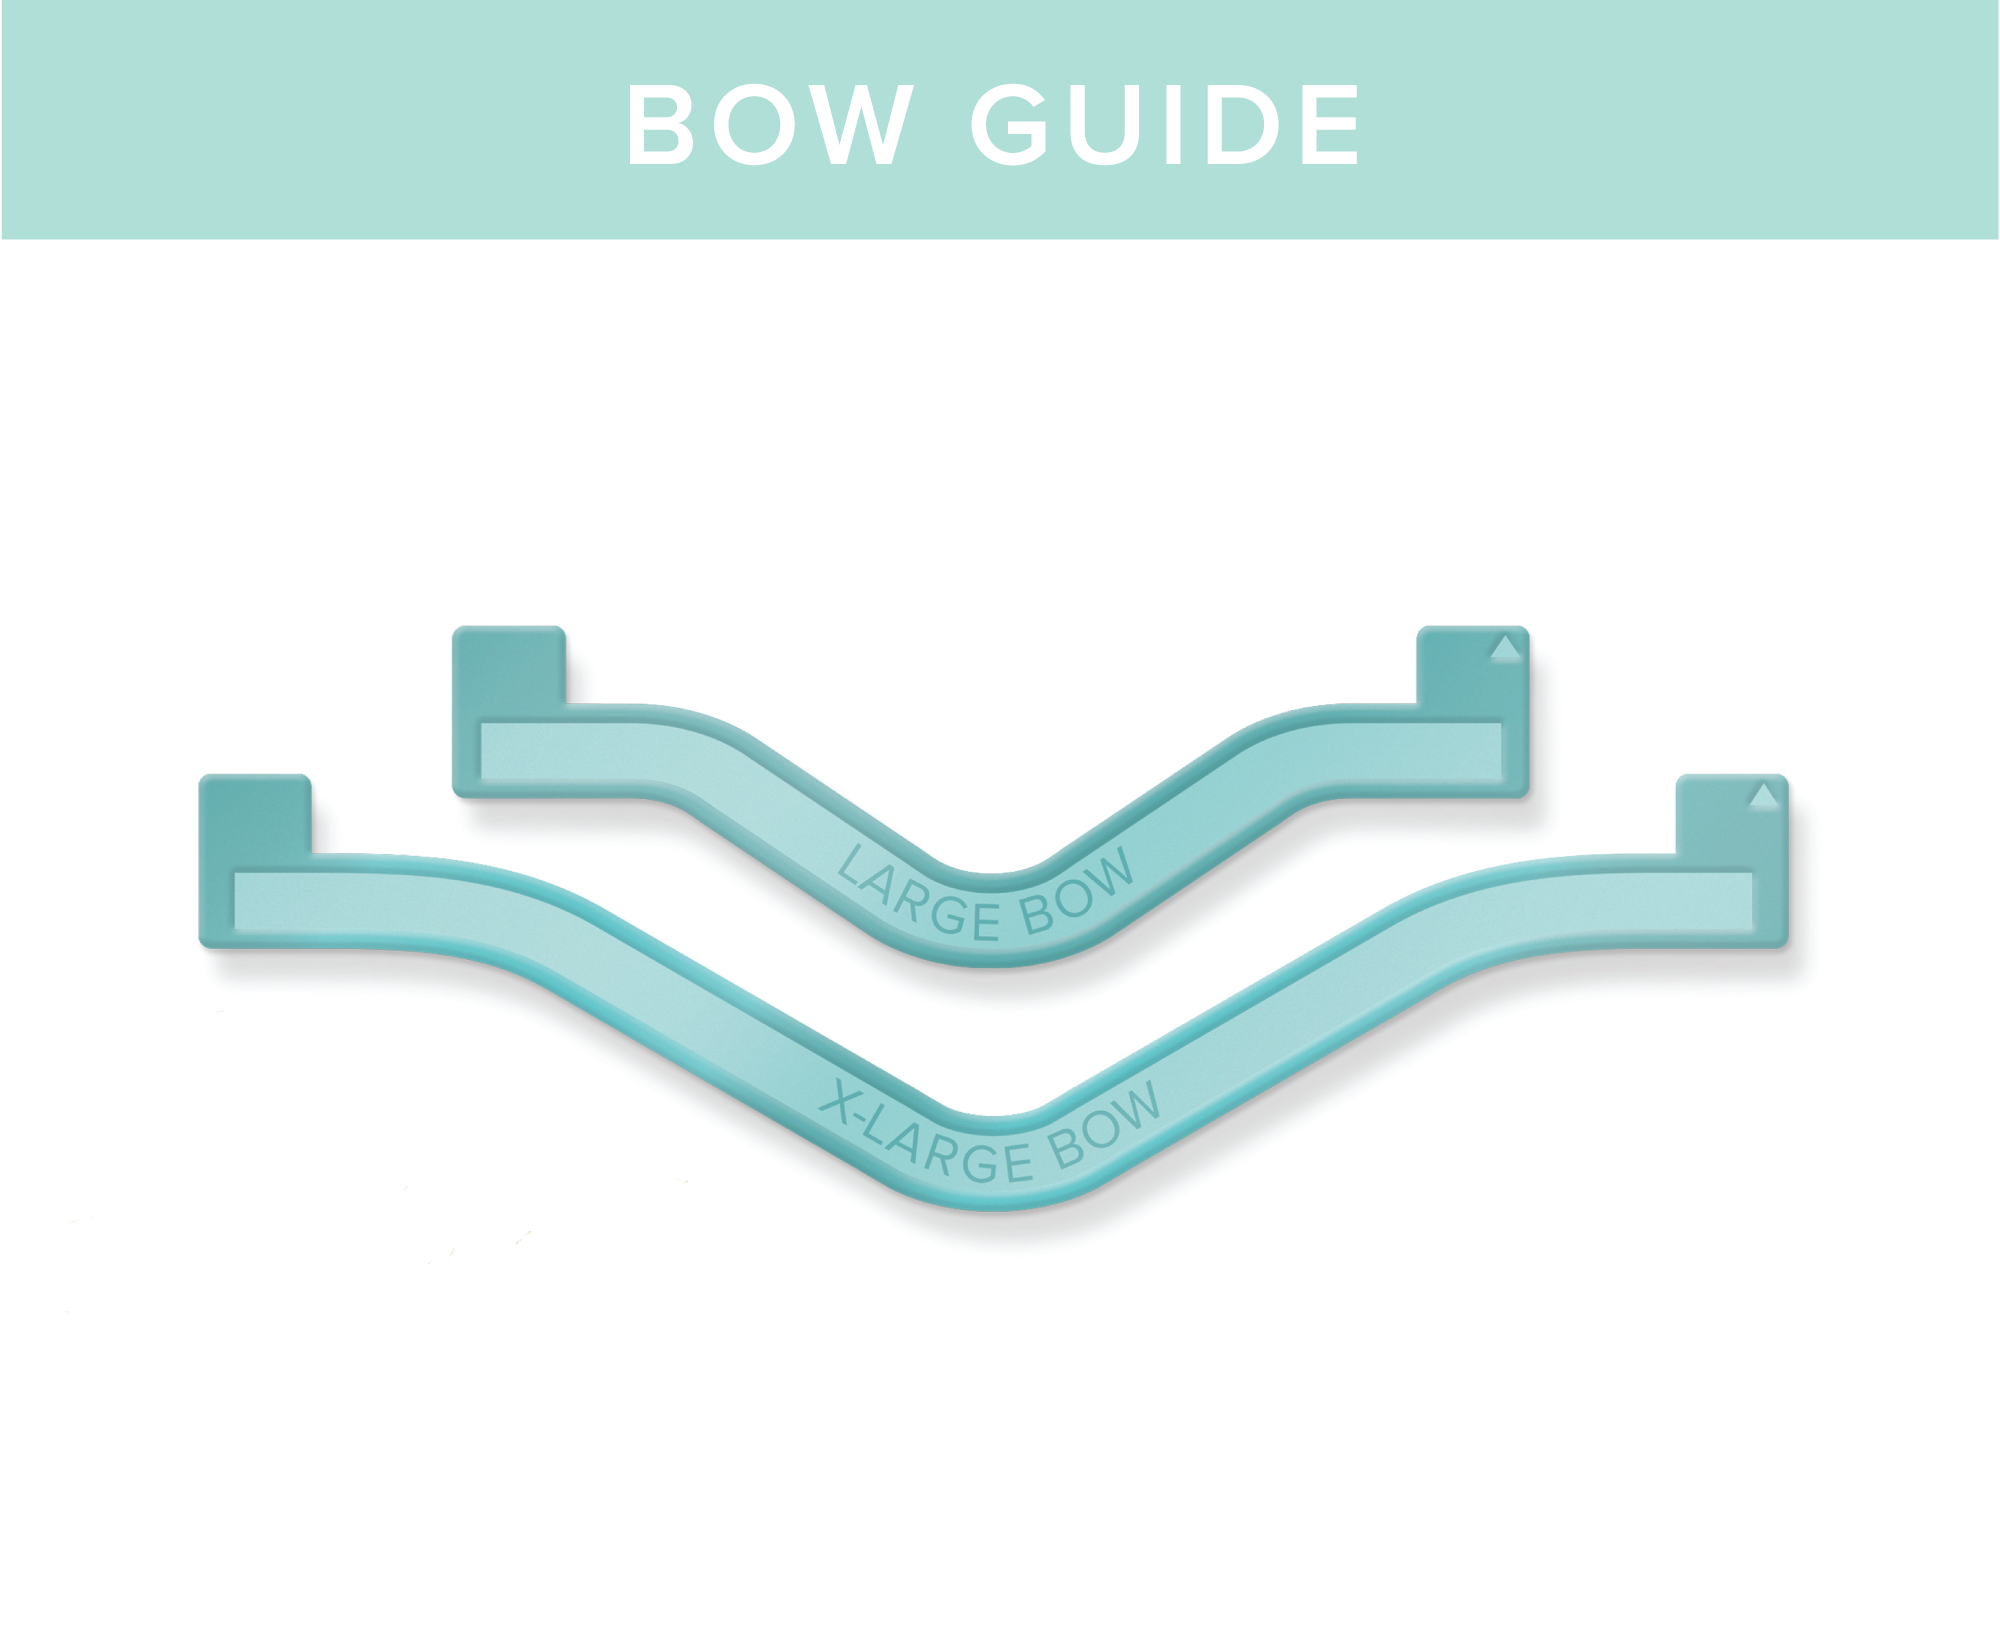 WR_BowGuide_Instructions_Links